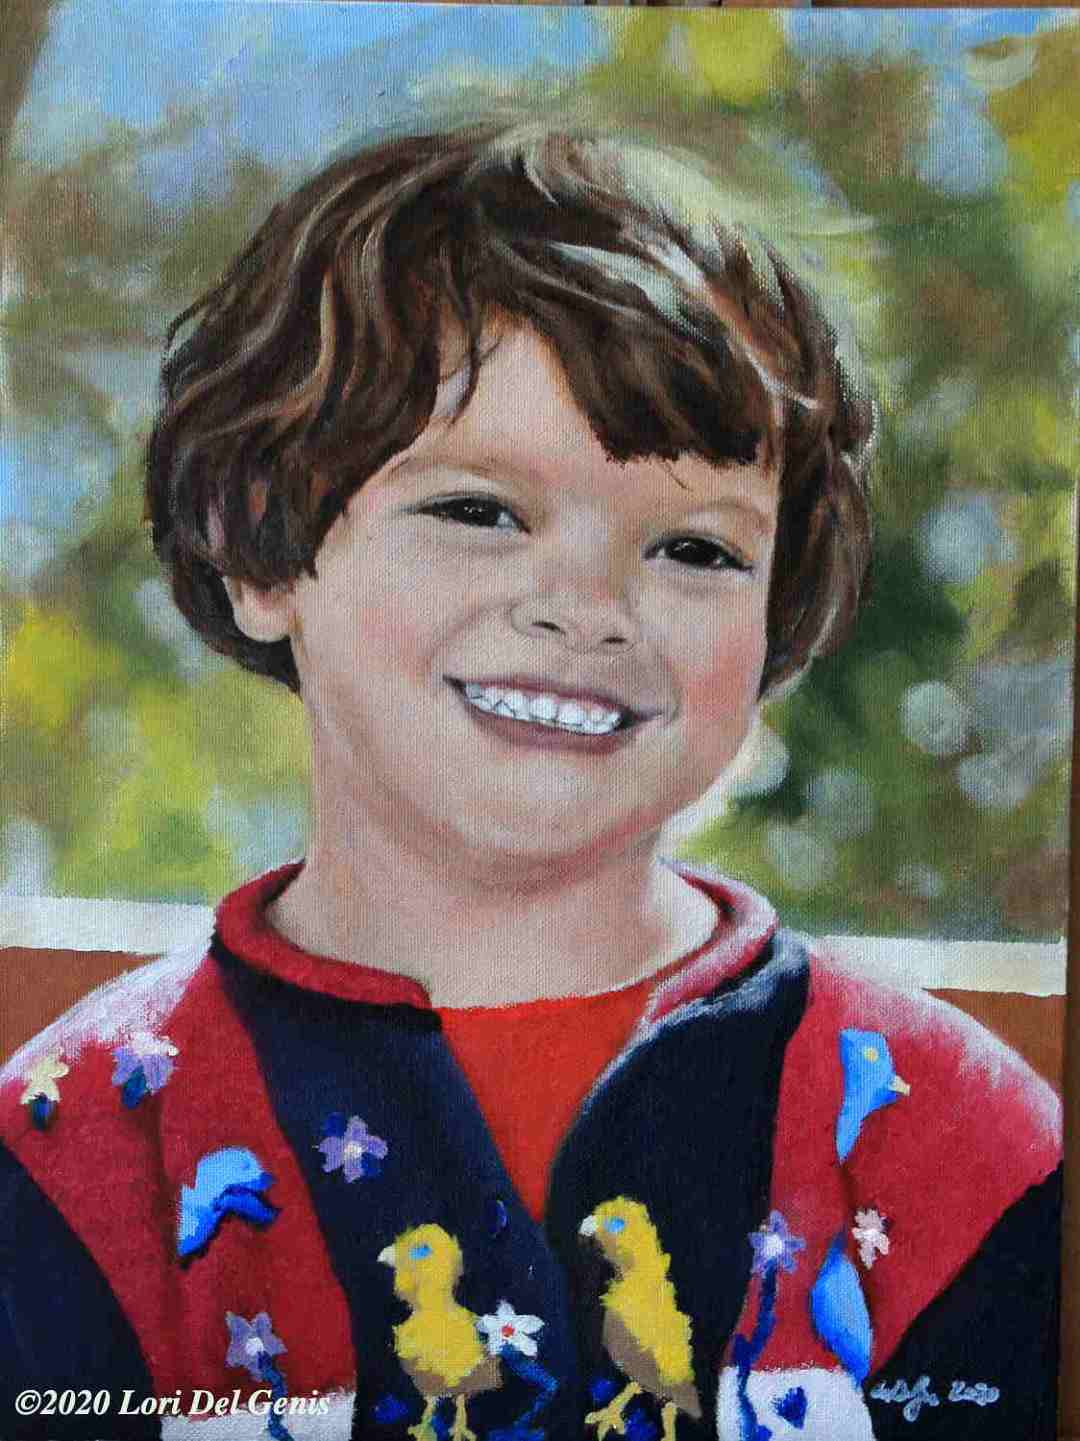 'M, aged 5' commissioned oil painting of an adorable smiling wee one in a colorful sweater by Lori Del Genis (2020)